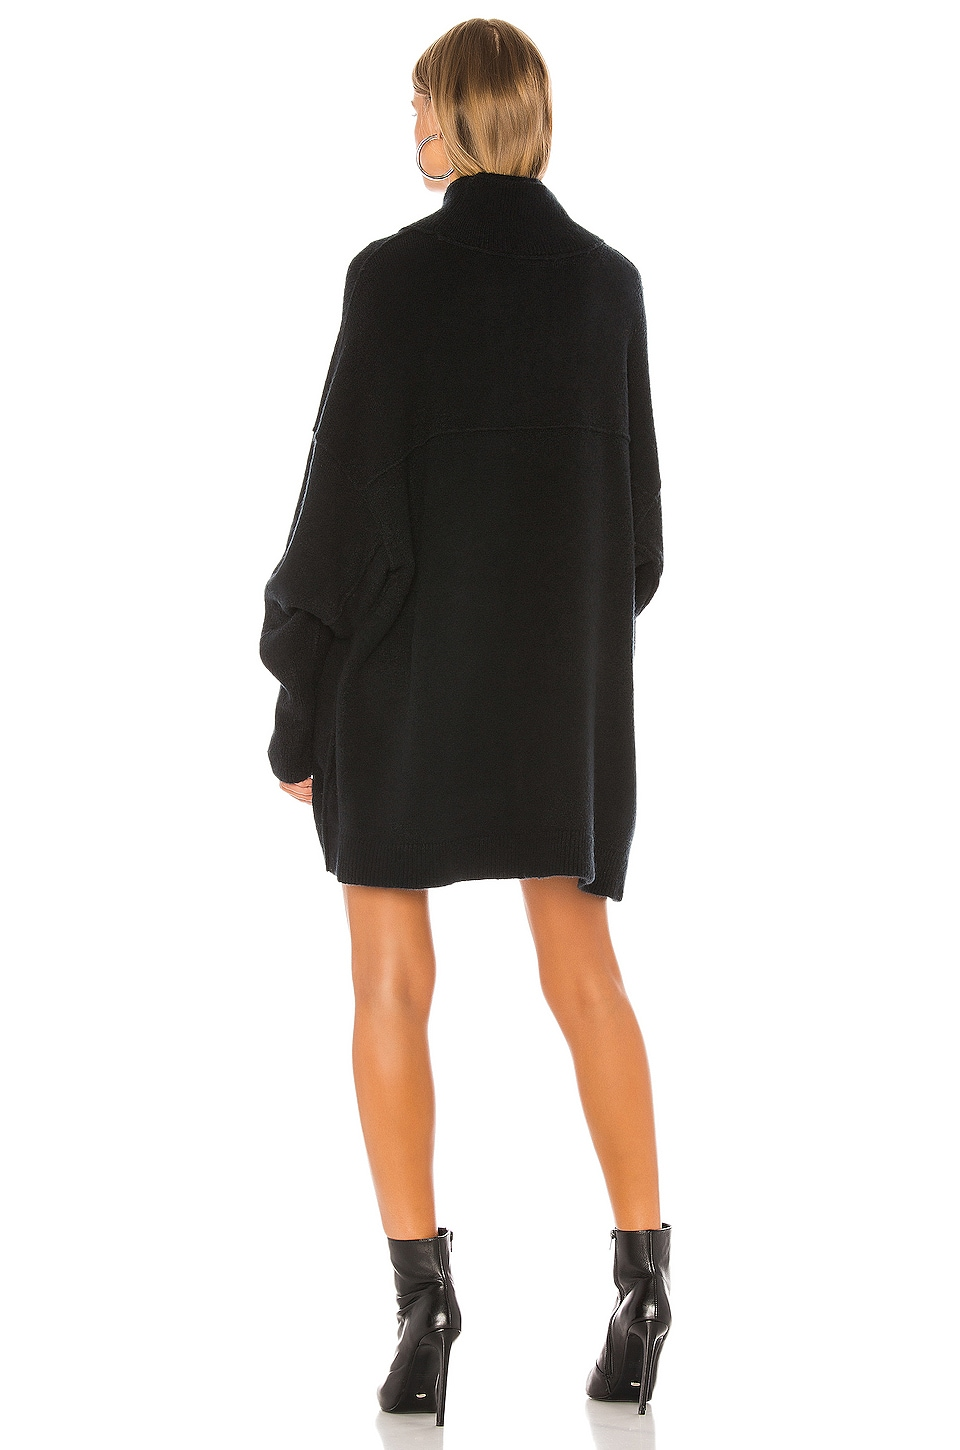 Afterglow Mock Neck Sweater Dress, view 3, click to view large image.